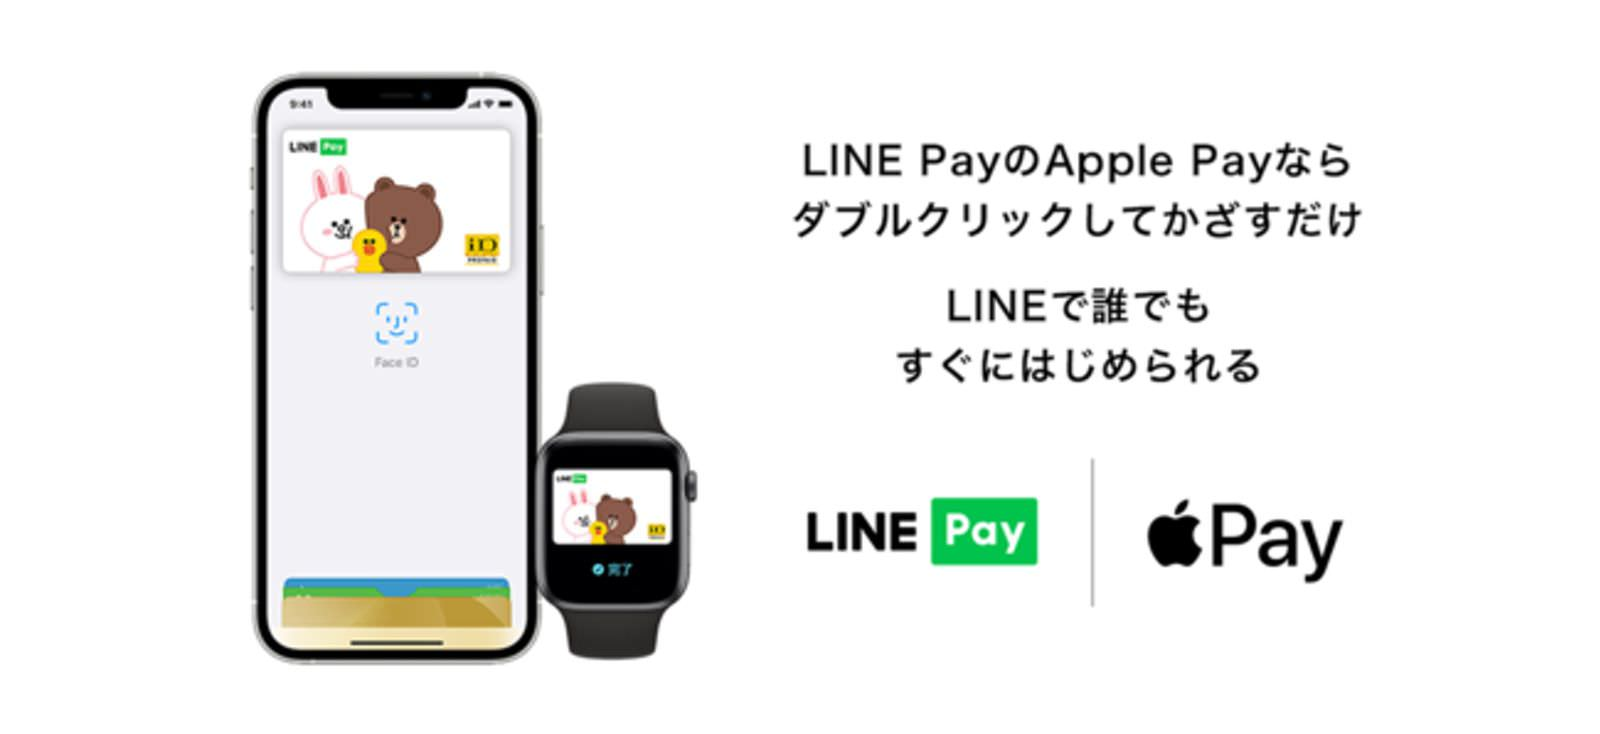 Line pay apple pay